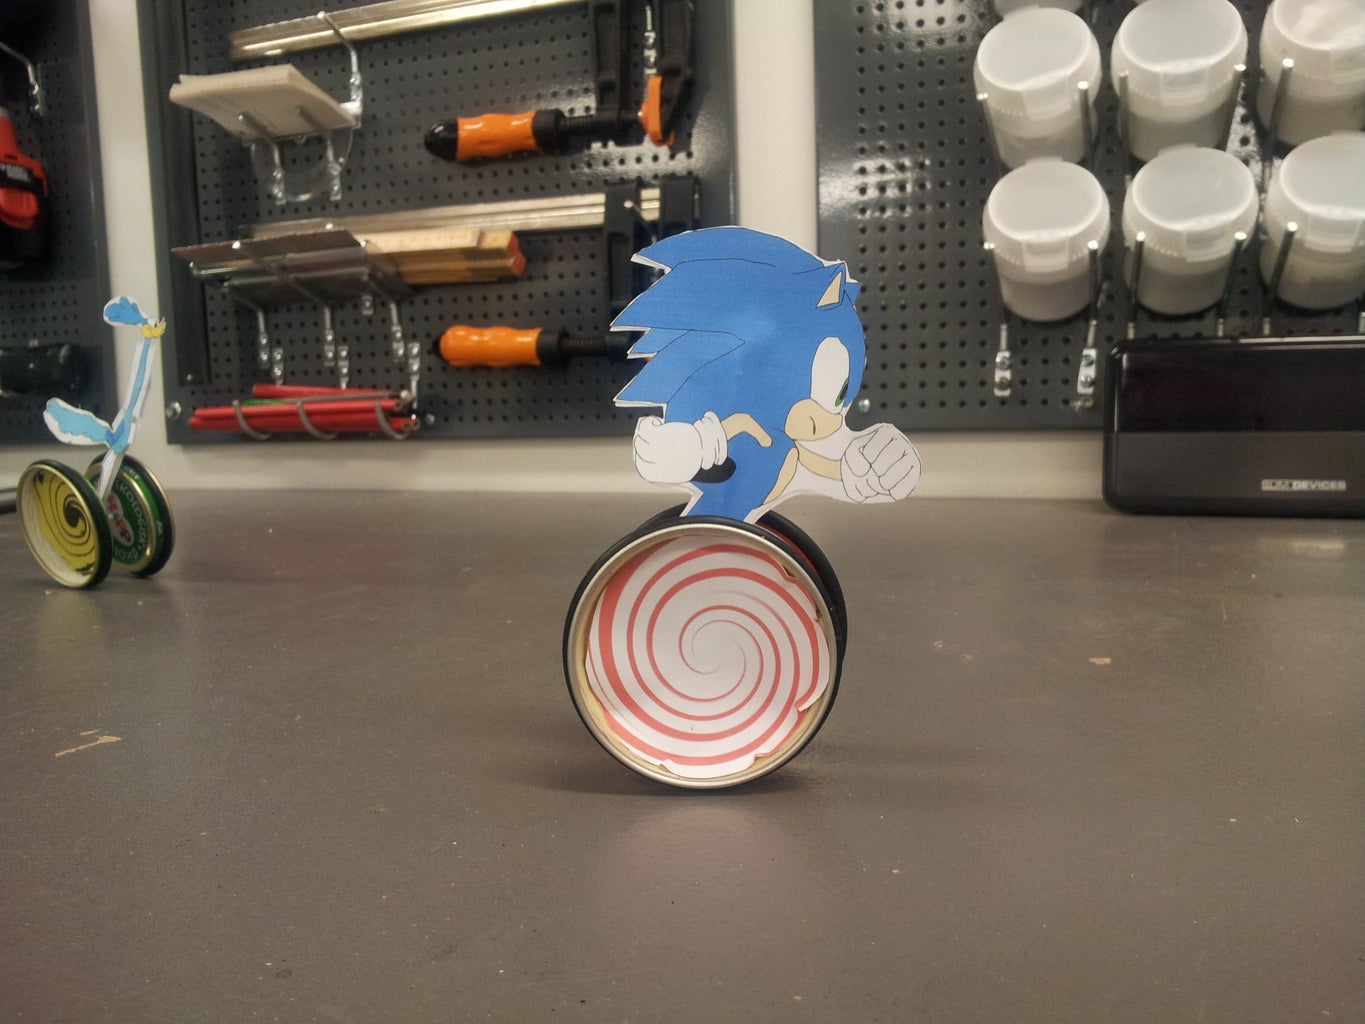 Sonic Toy That Is Really Fun to Make and Use